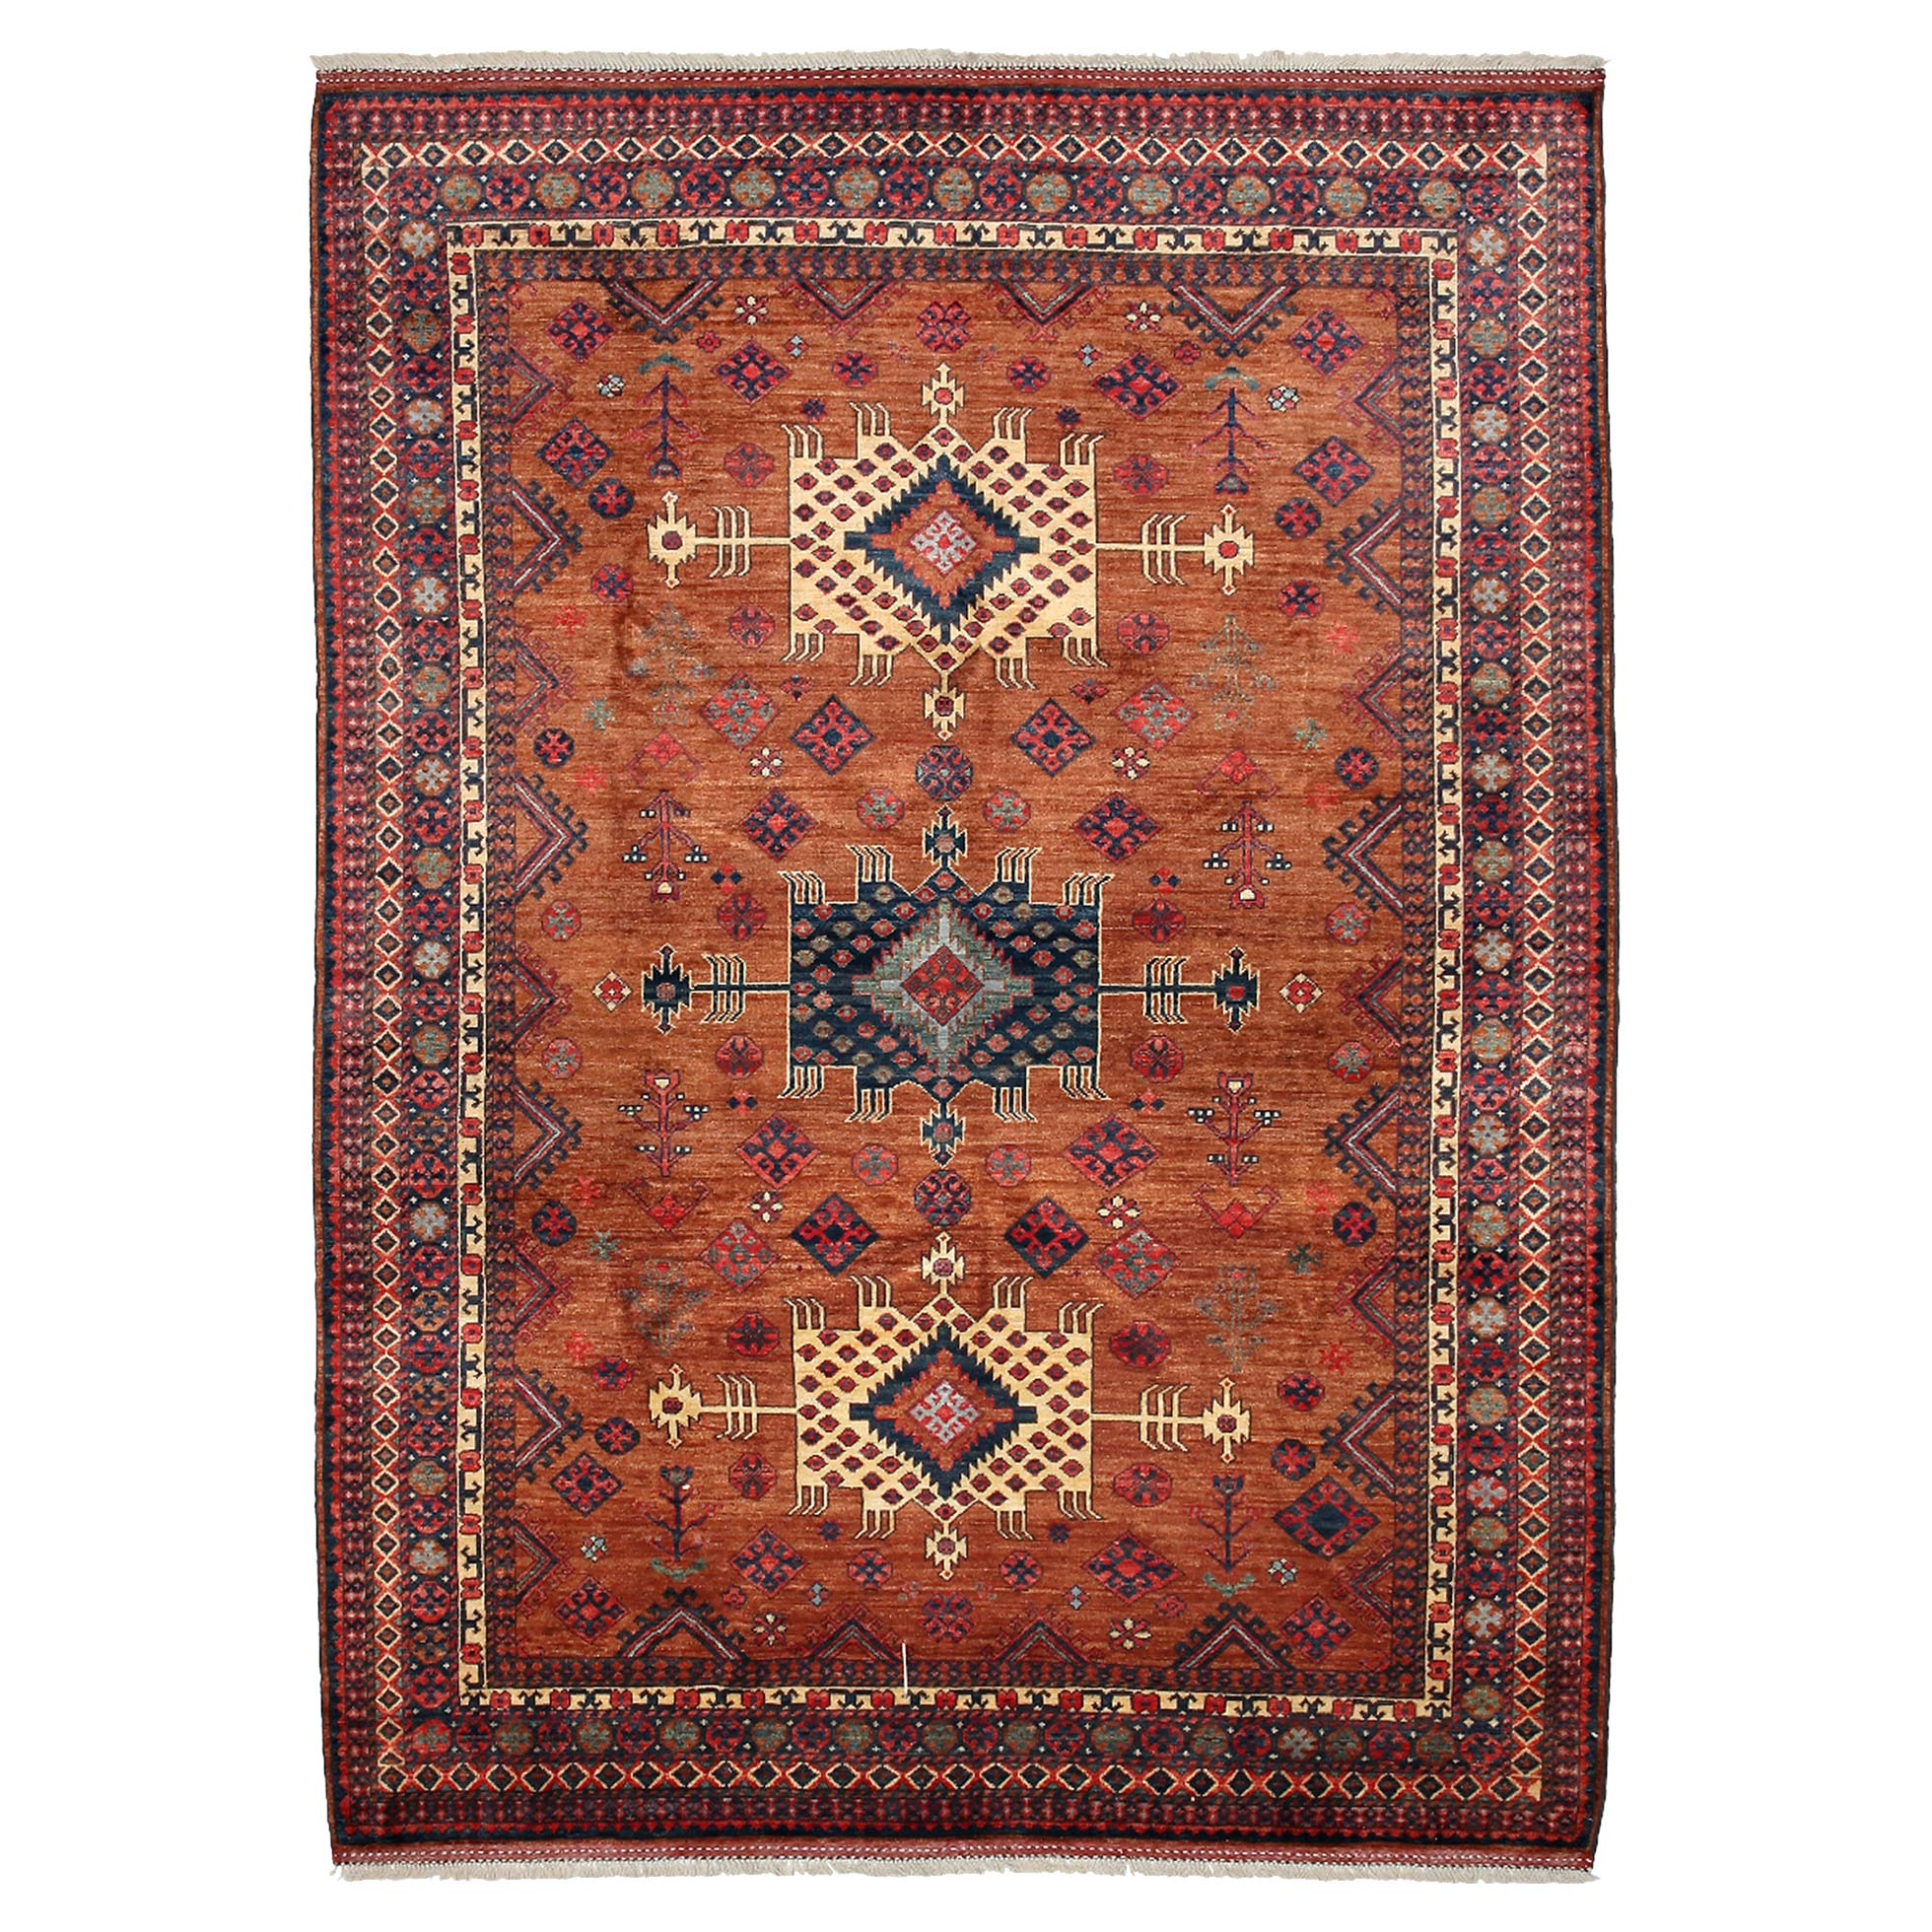 Jove Indian Rust Red Medallion Wool Rug - 6'10 x 10'1